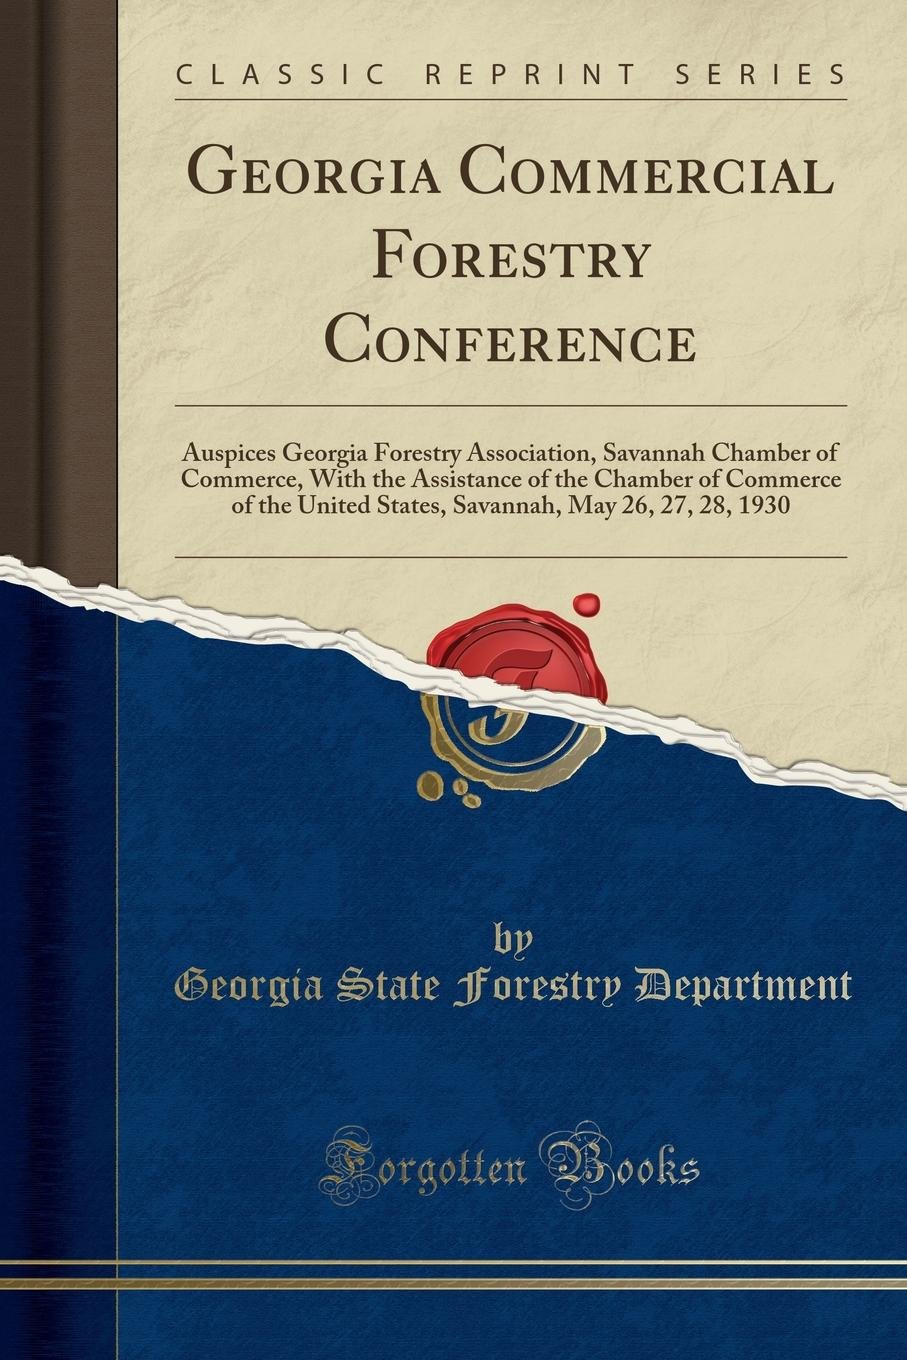 Download Georgia Commercial Forestry Conference: Auspices Georgia Forestry Association, Savannah Chamber of Commerce, With the Assistance of the Chamber of ... May 26, 27, 28, 1930 (Classic Reprint) PDF